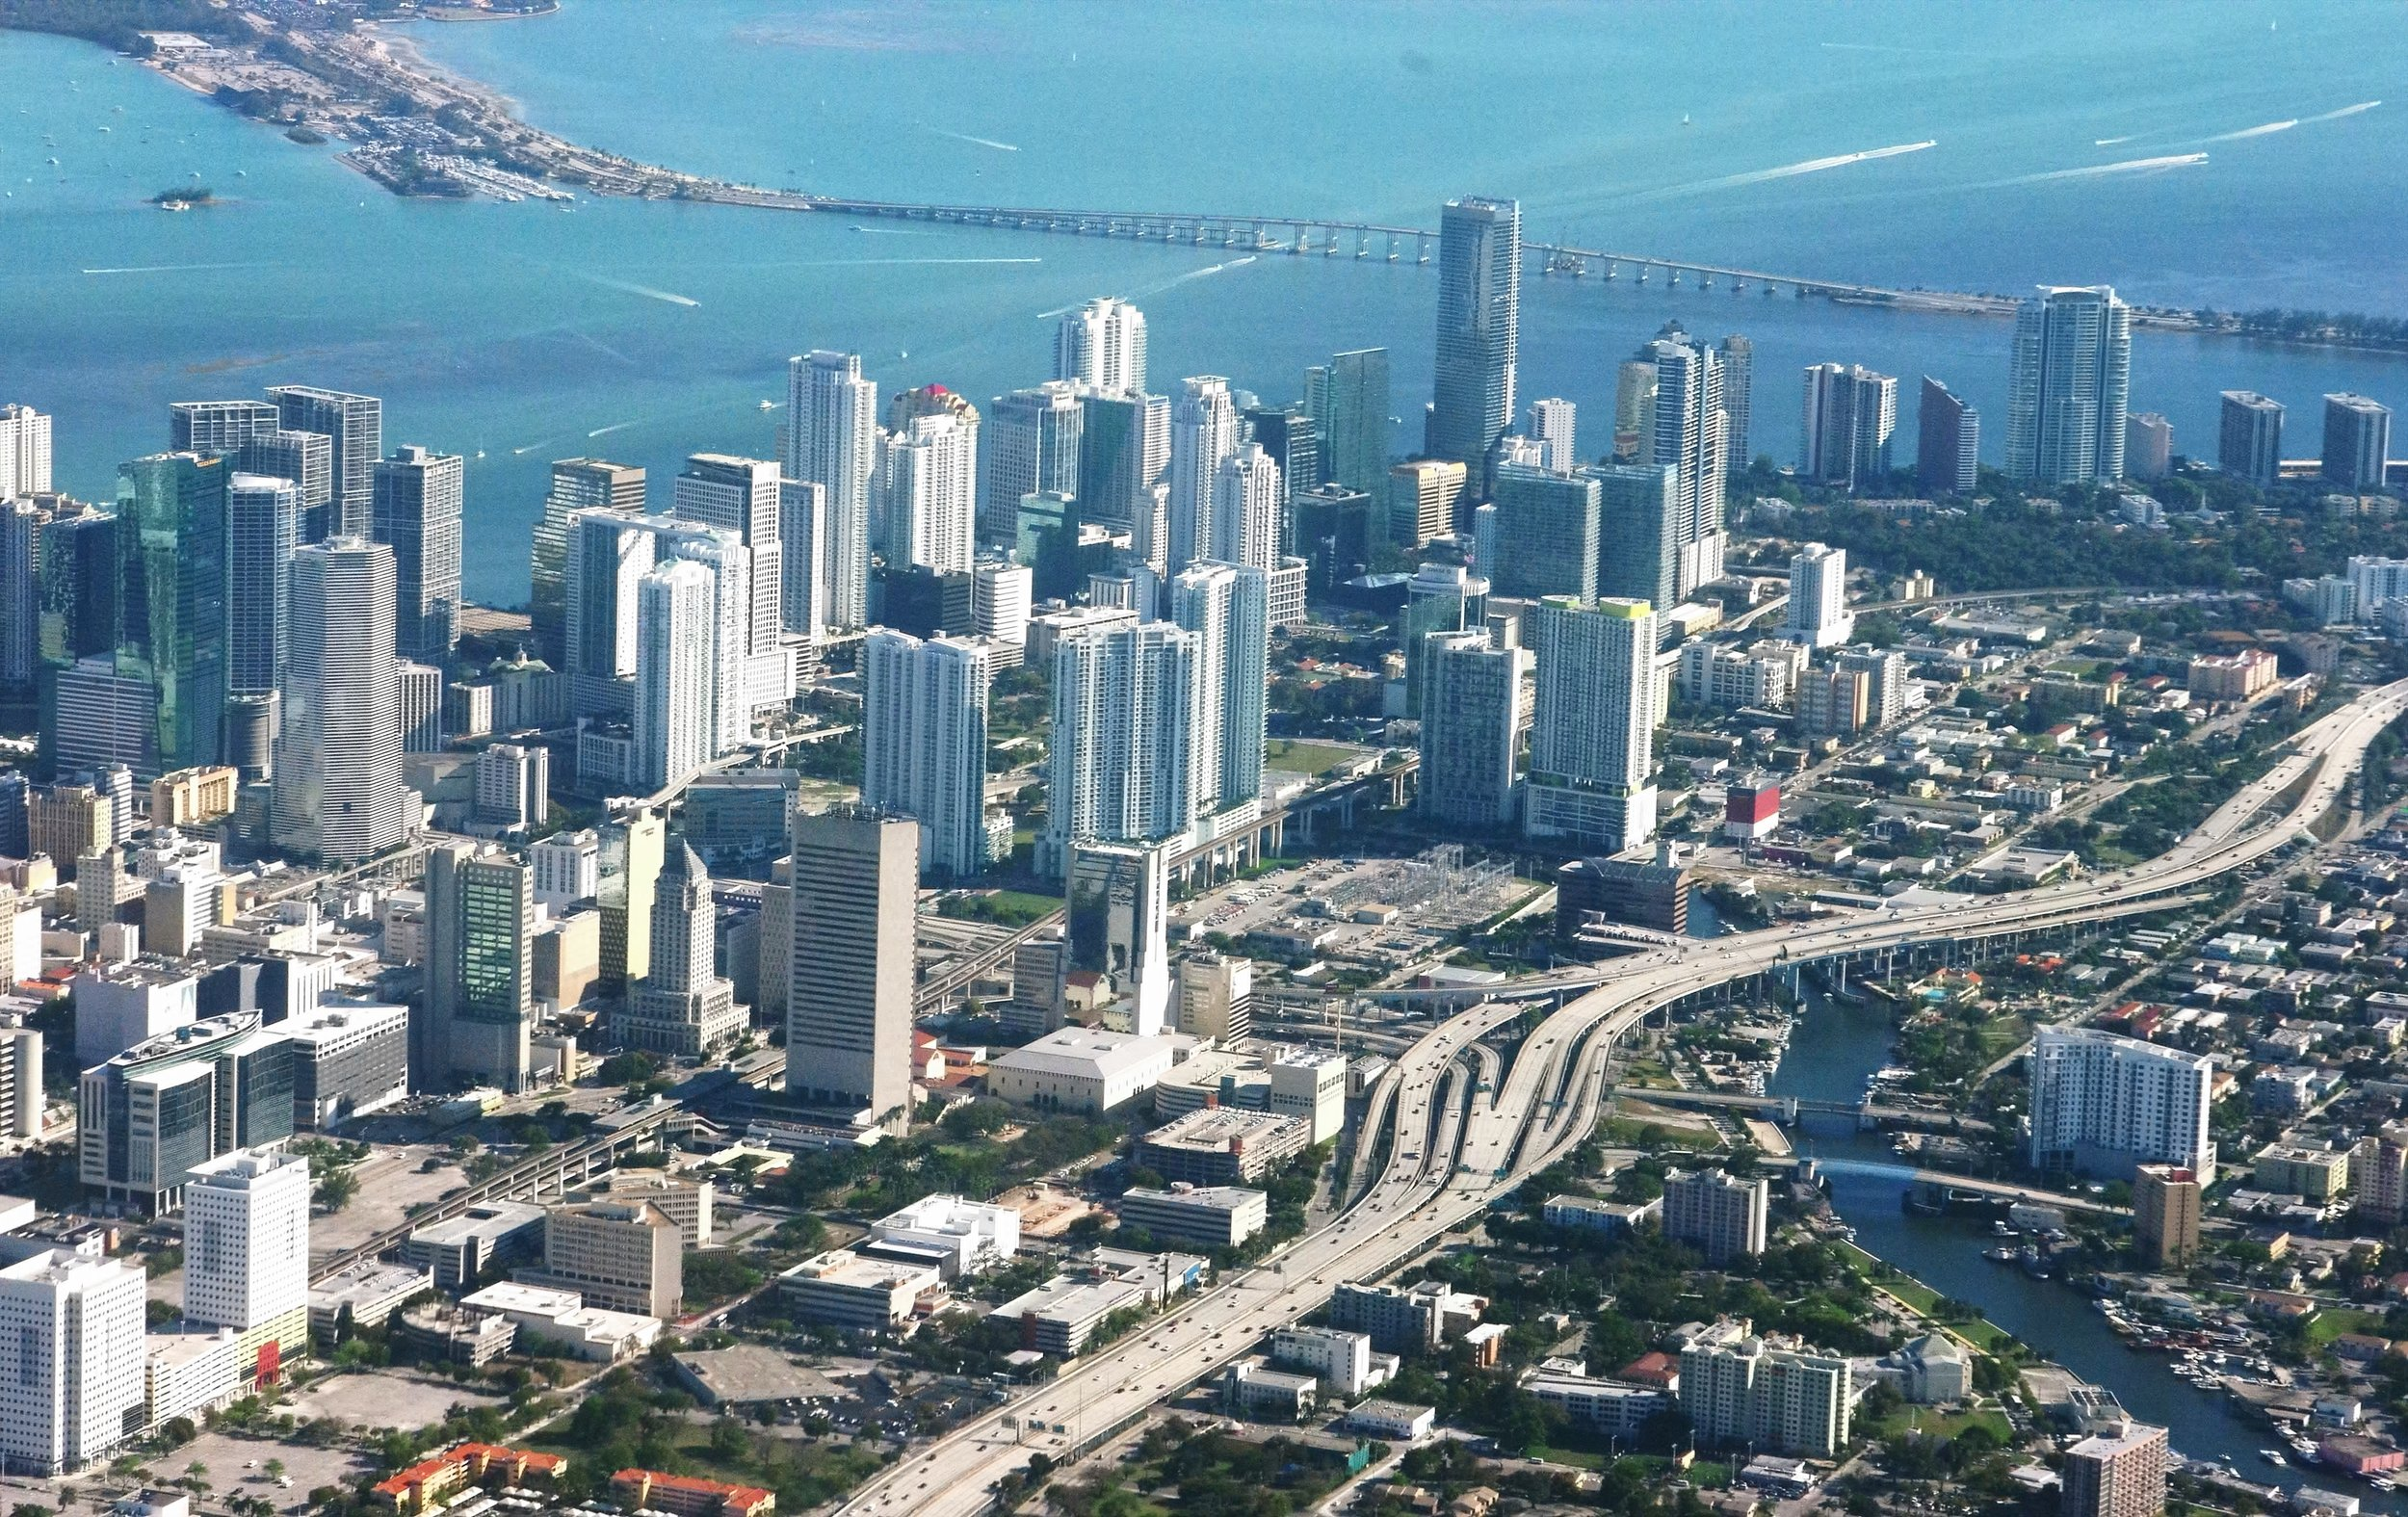 Miami_from_above.jpg